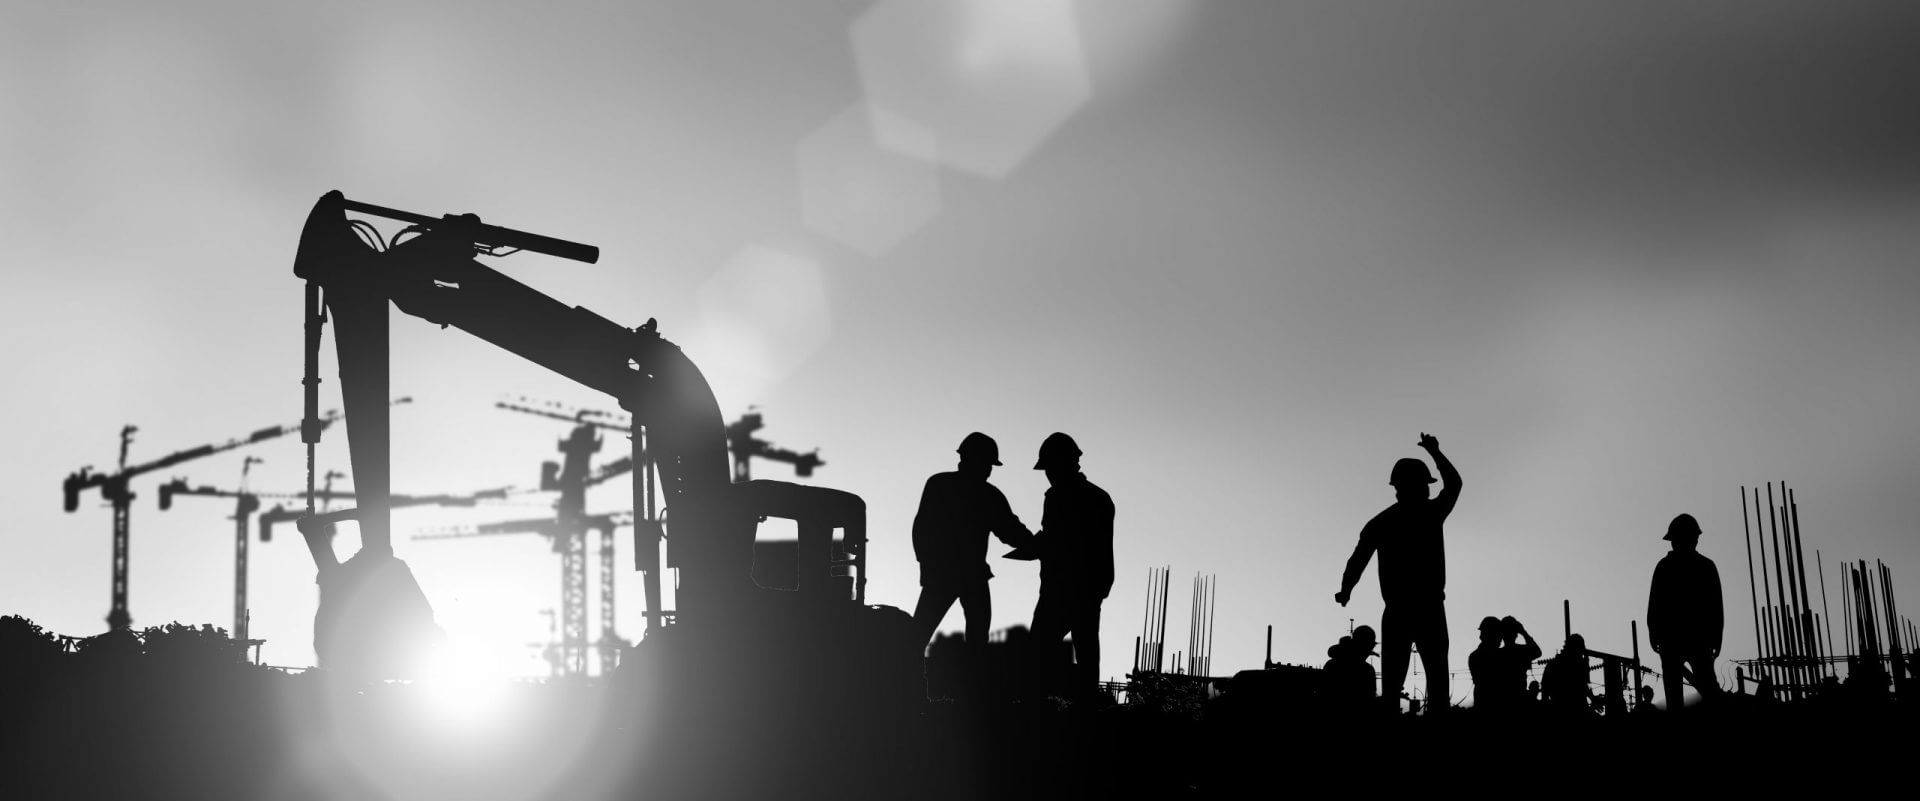 Silhouette of engineer and construction team working at siteloading=